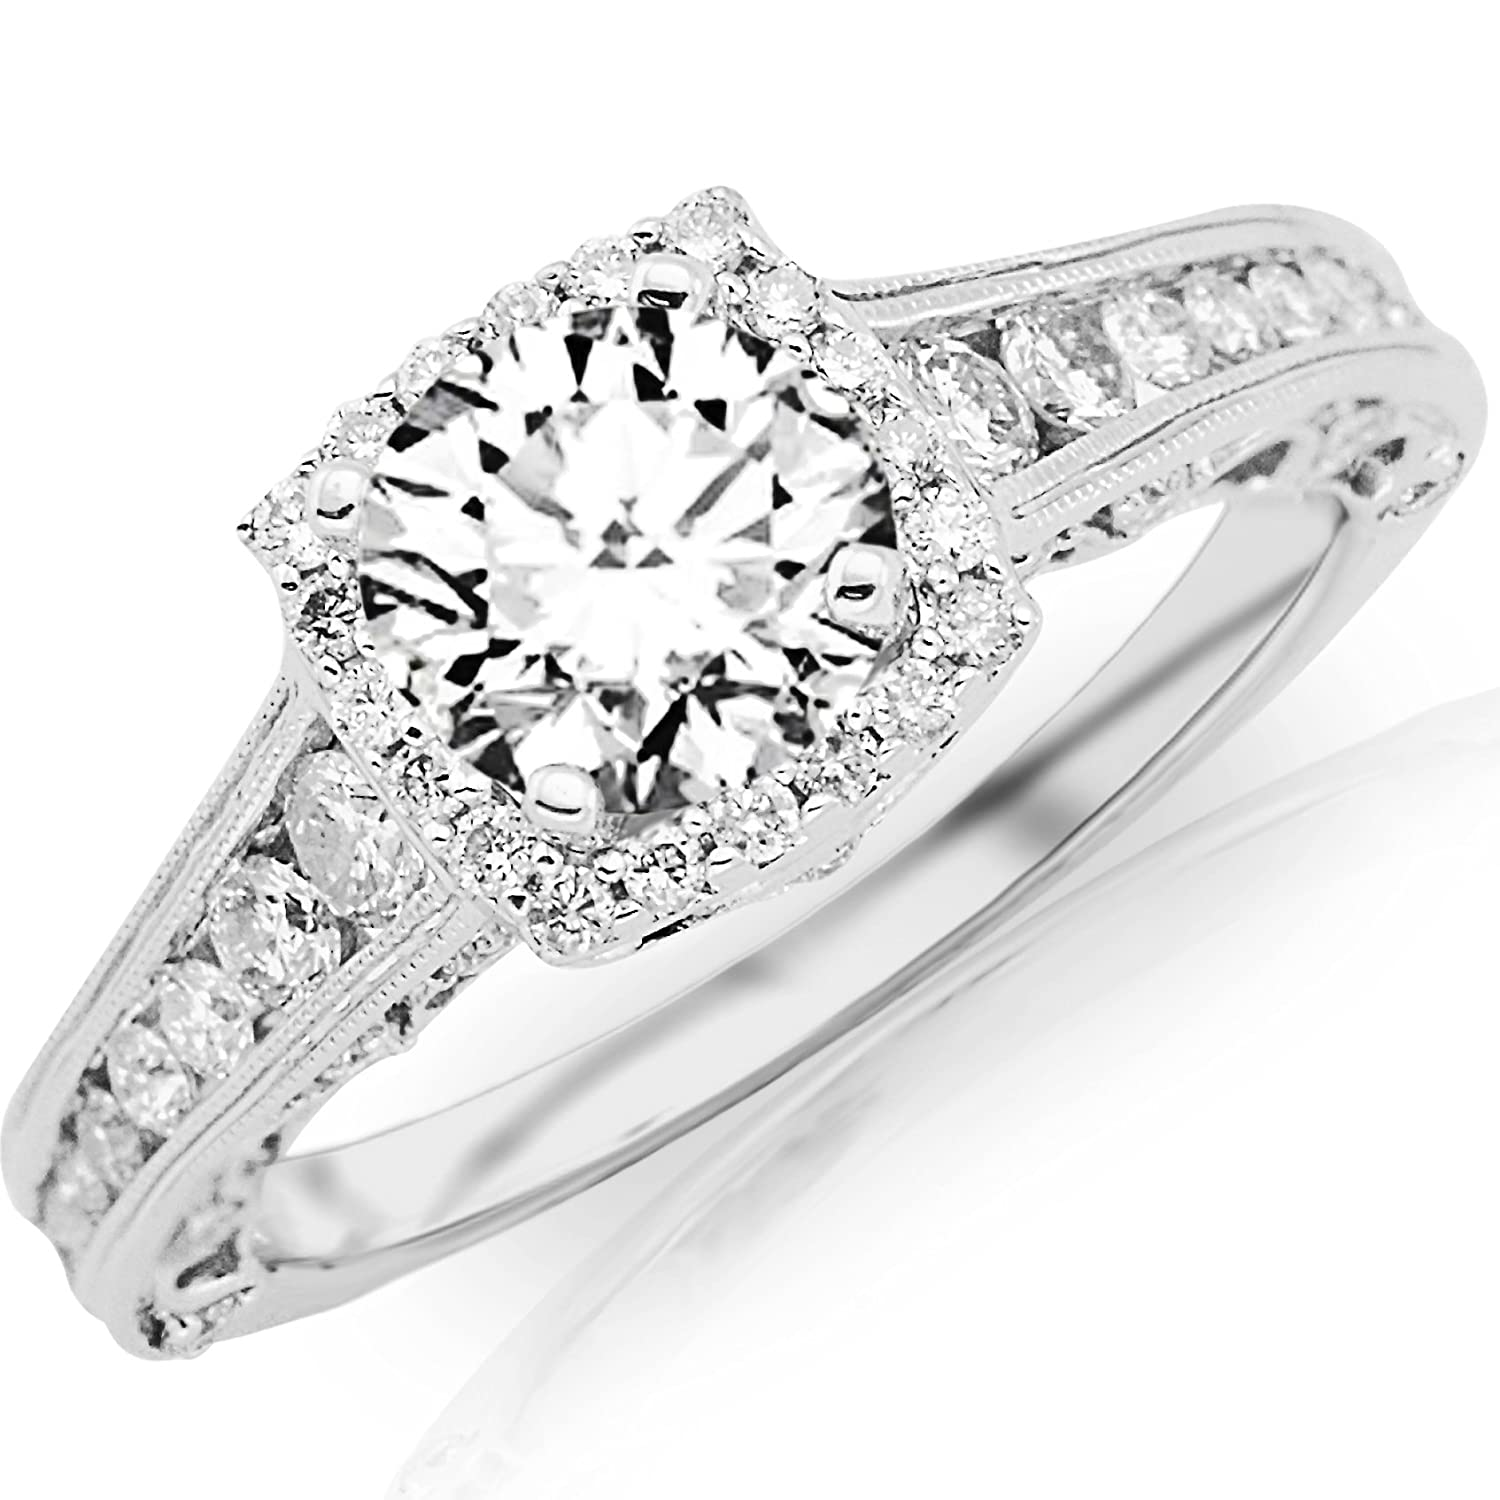 About Round Diamond Engagement Ring